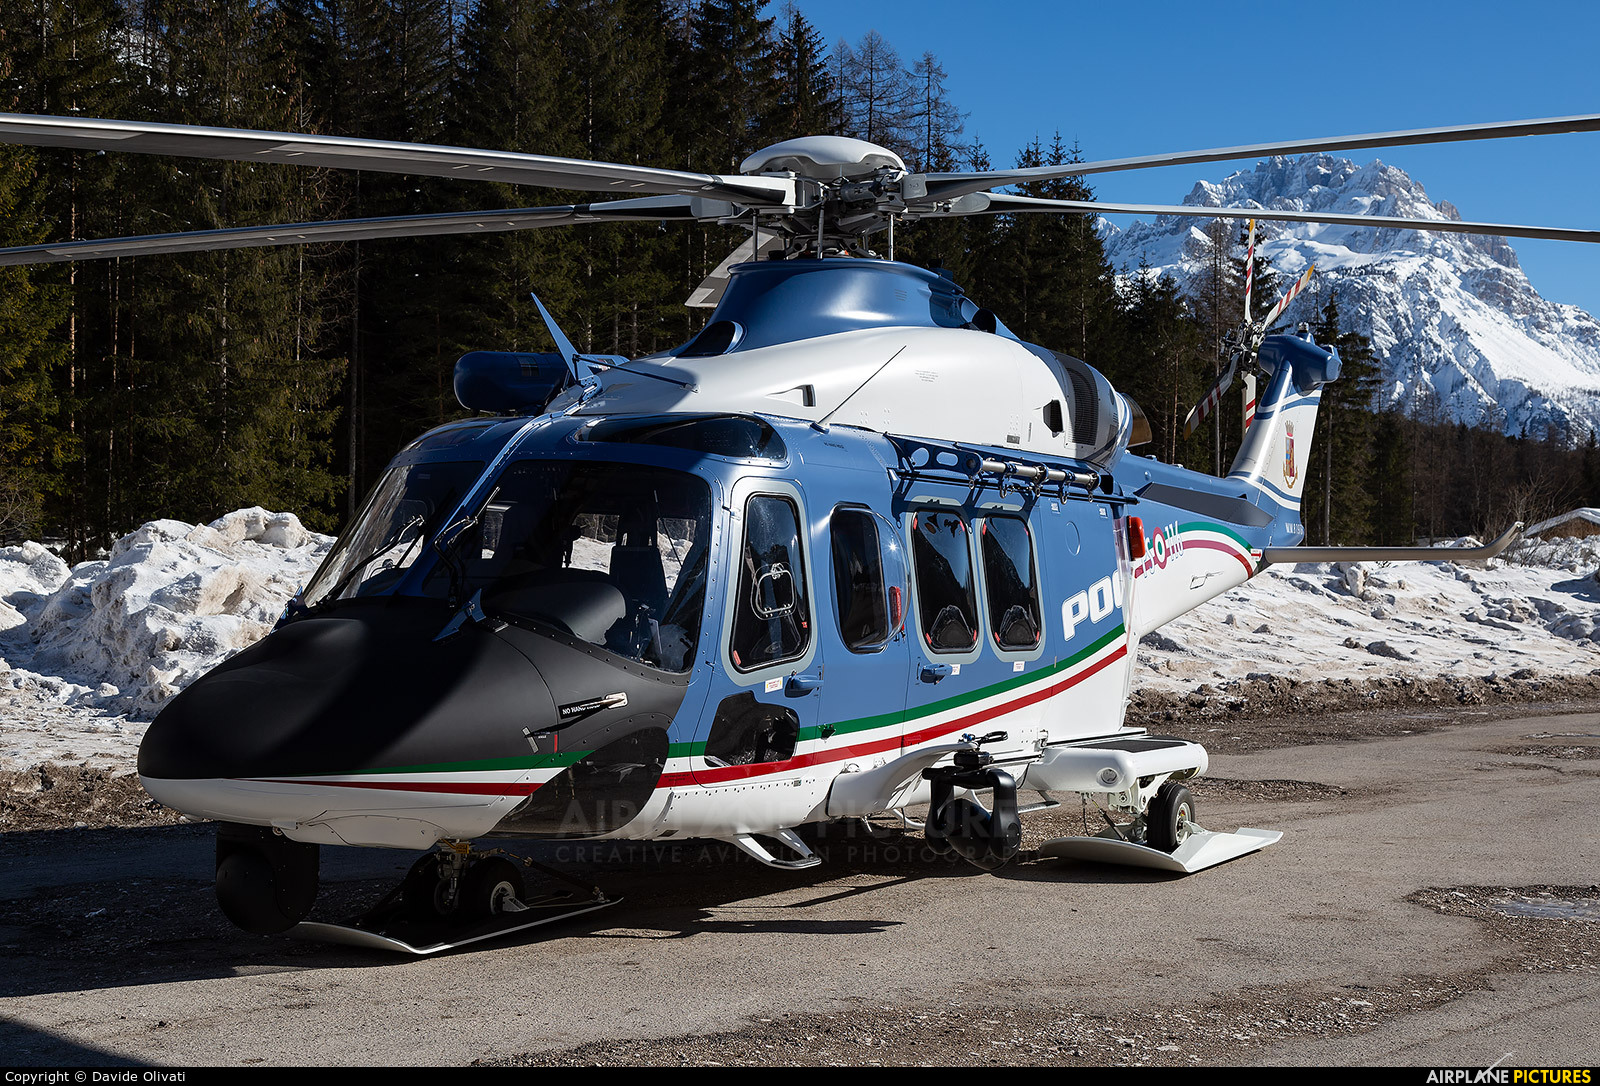 Italy - Police MM81978 aircraft at Off Airport - Italy